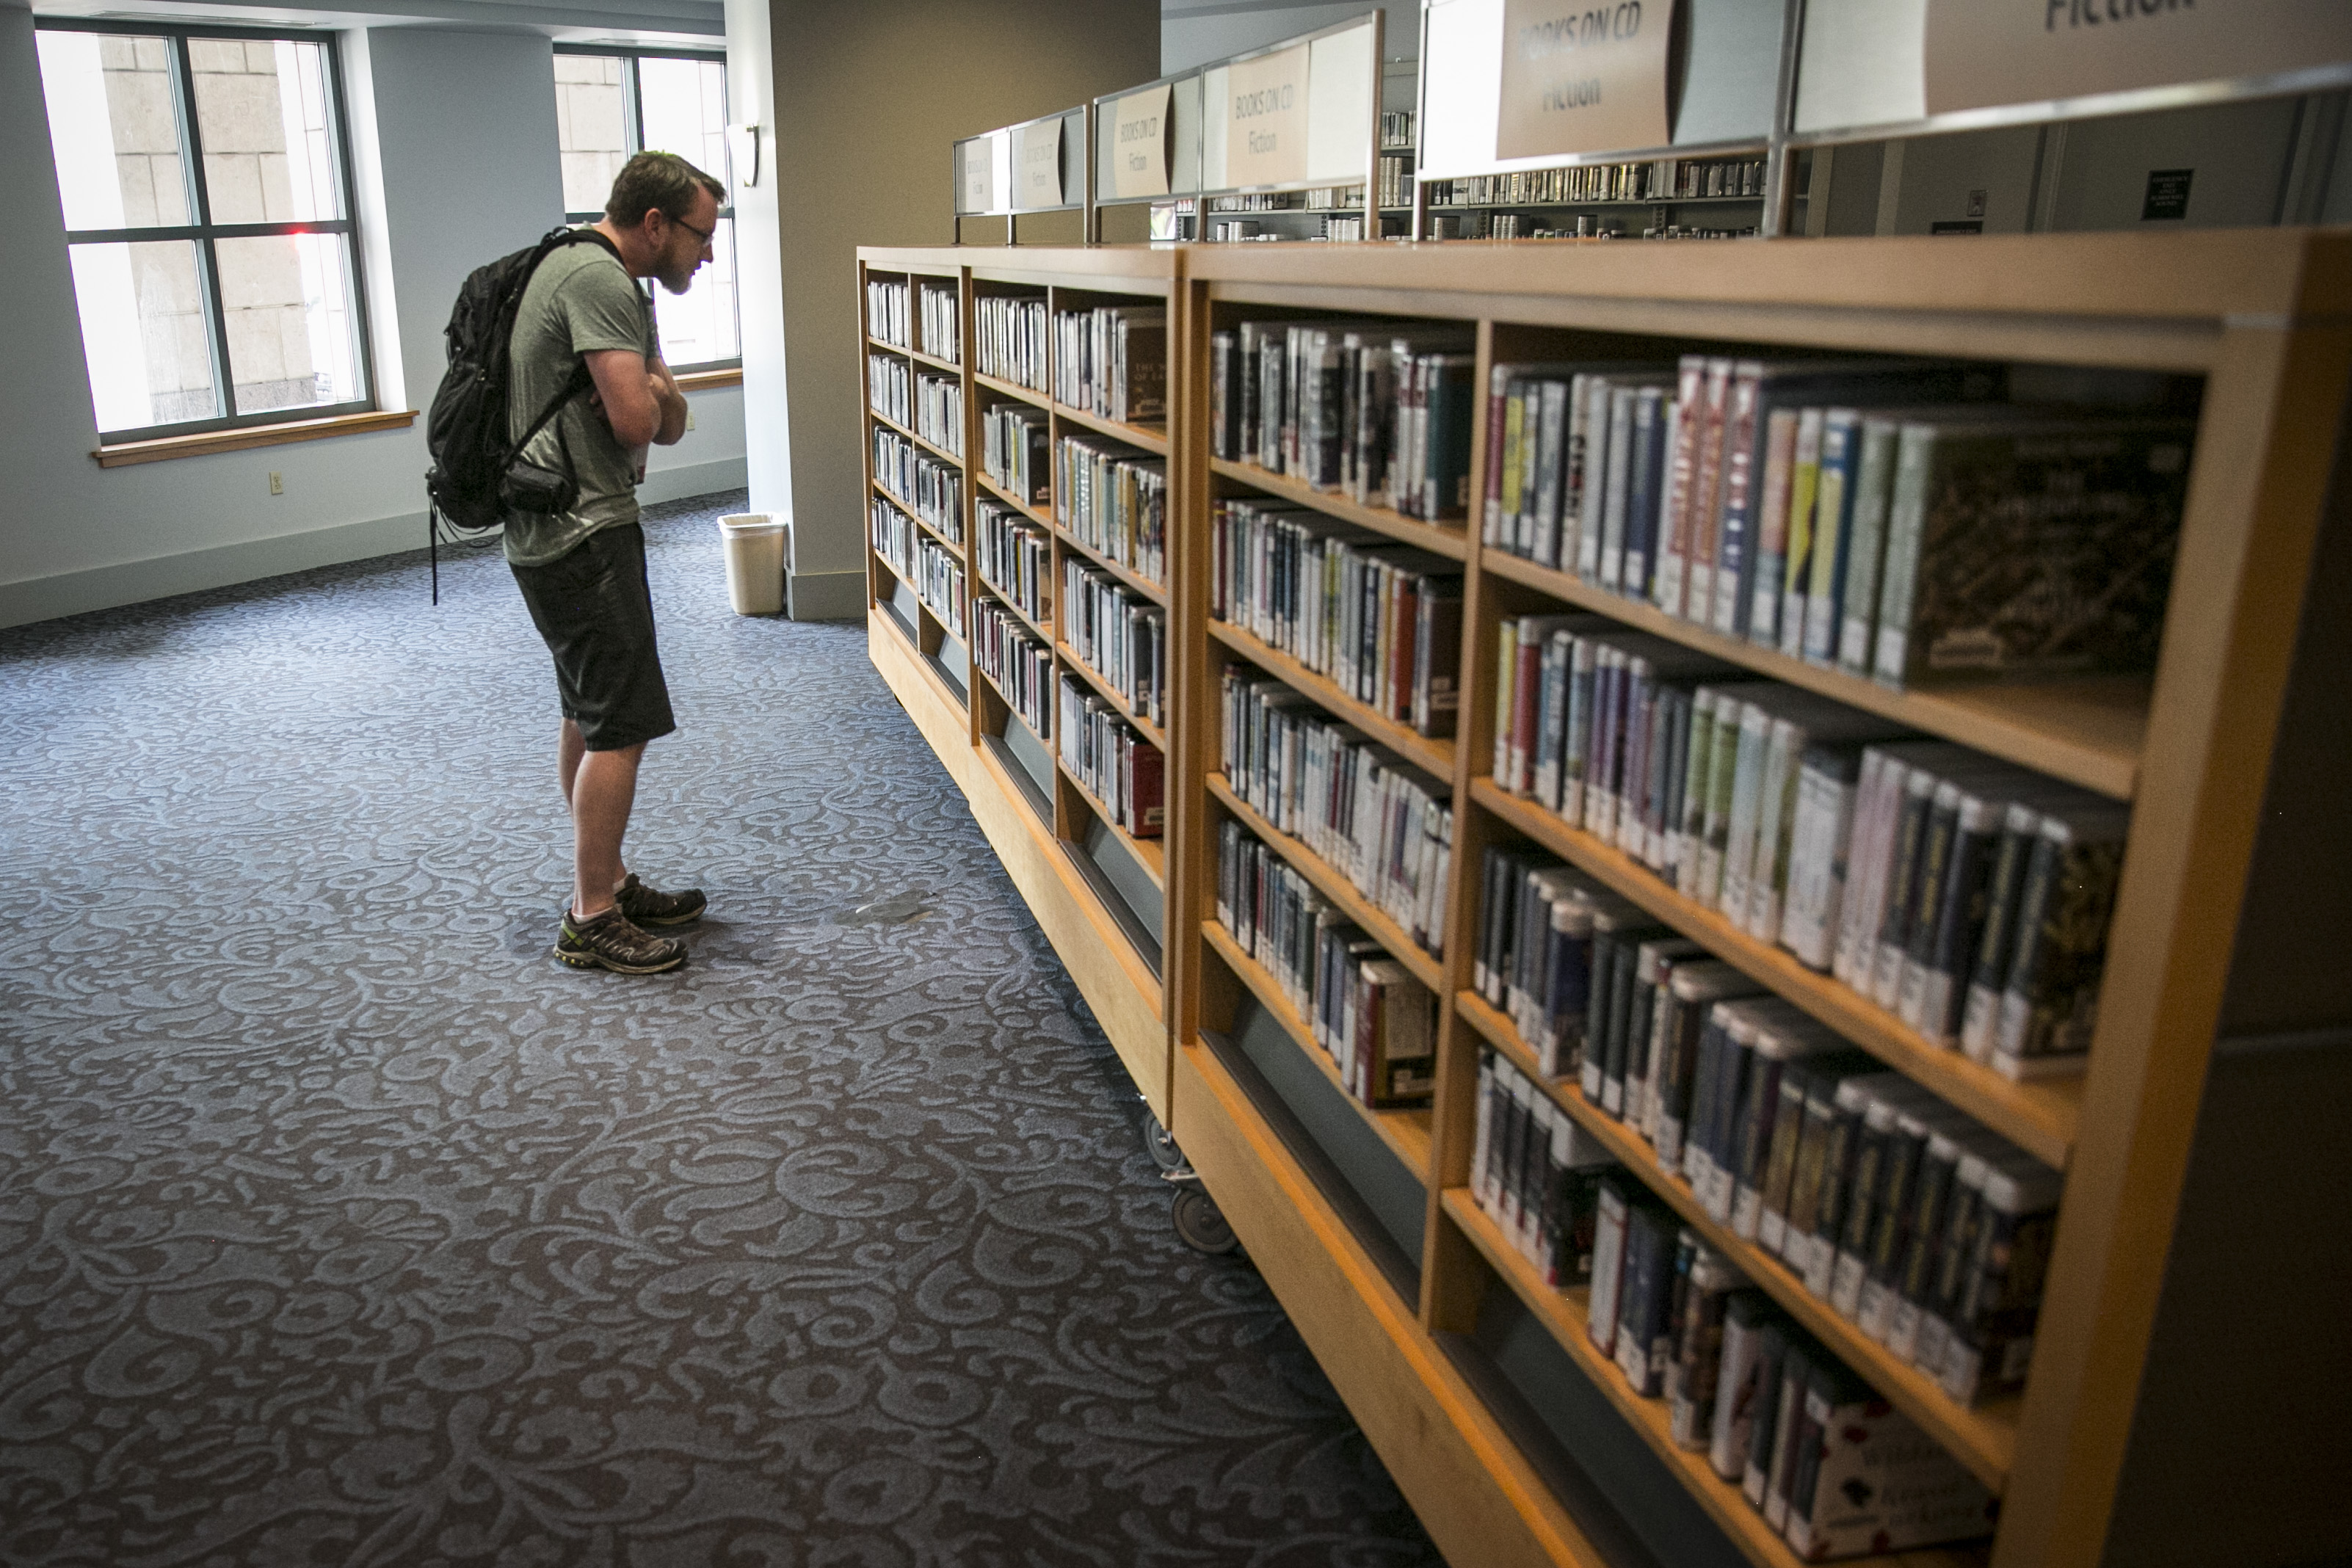 Brett Normandin of Denver peruses the audio book section of the Denver Central Library on Thursday, May 25, 2017.